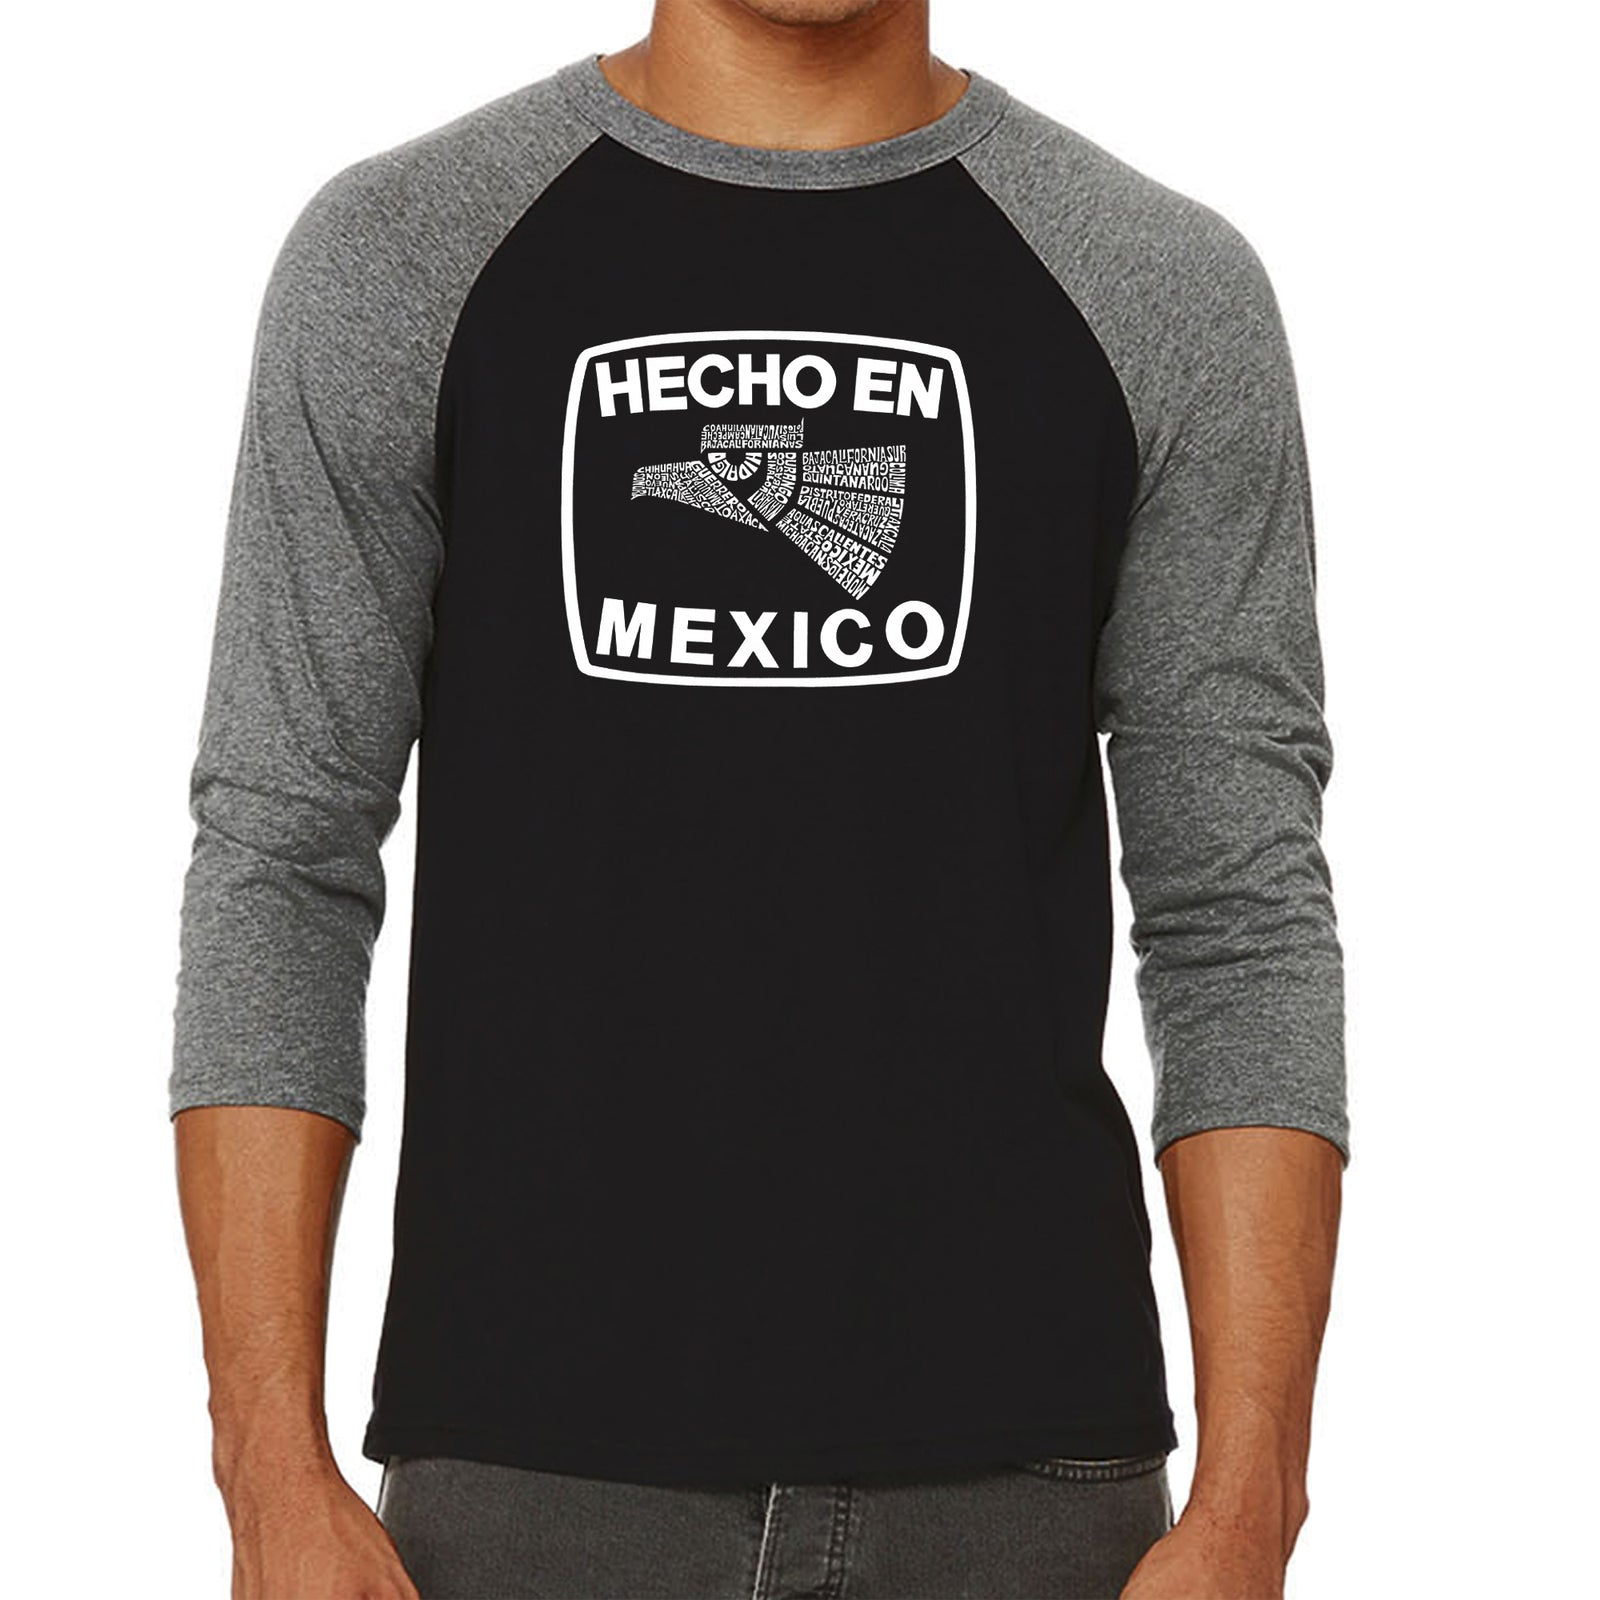 Men's Raglan Baseball Word Art T-shirt - HECHO EN MEXICO